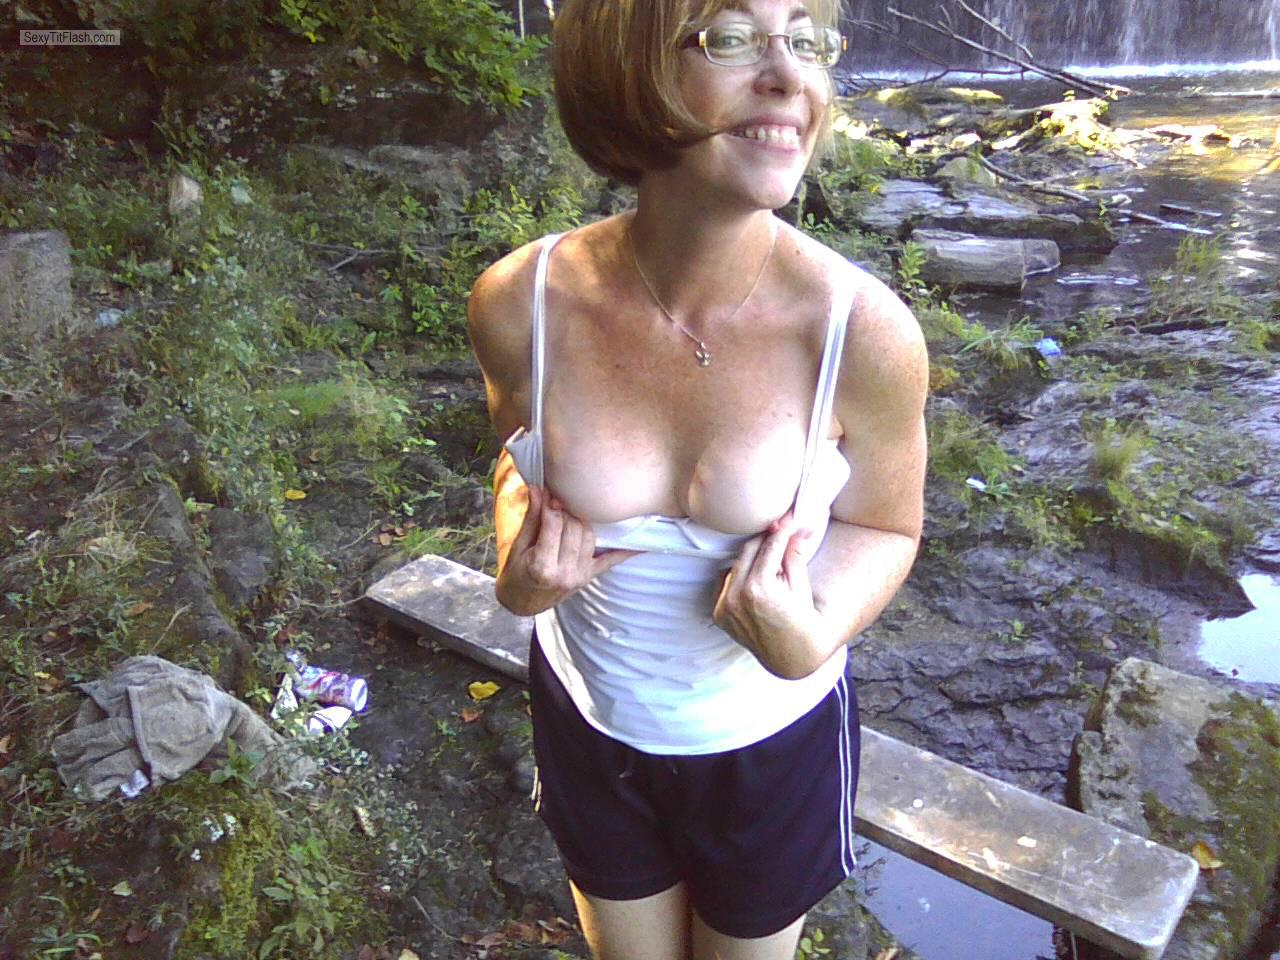 family nudist picture sites